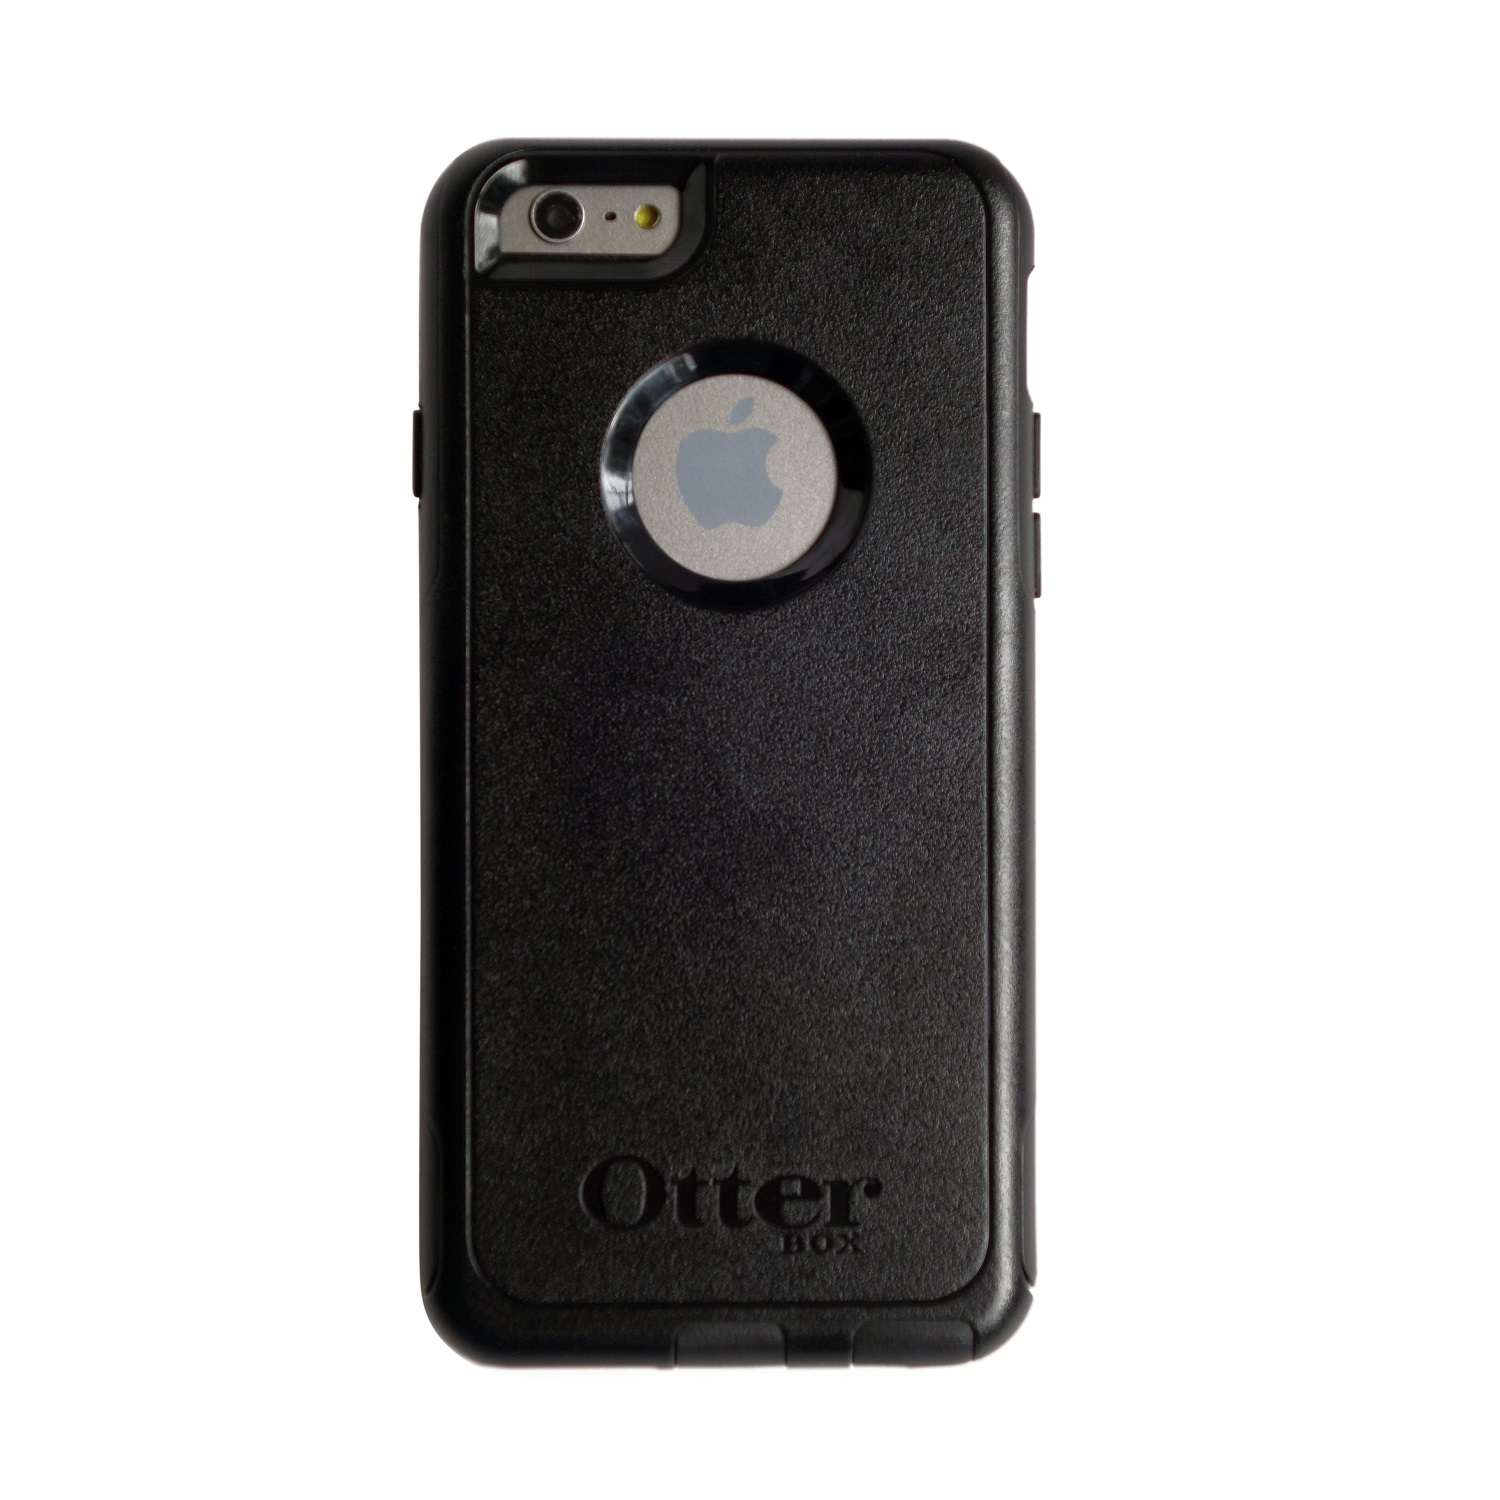 new products 5b17e c1738 CUSTOM Black OtterBox Commuter Series Case for Apple iPhone 6 PLUS ...